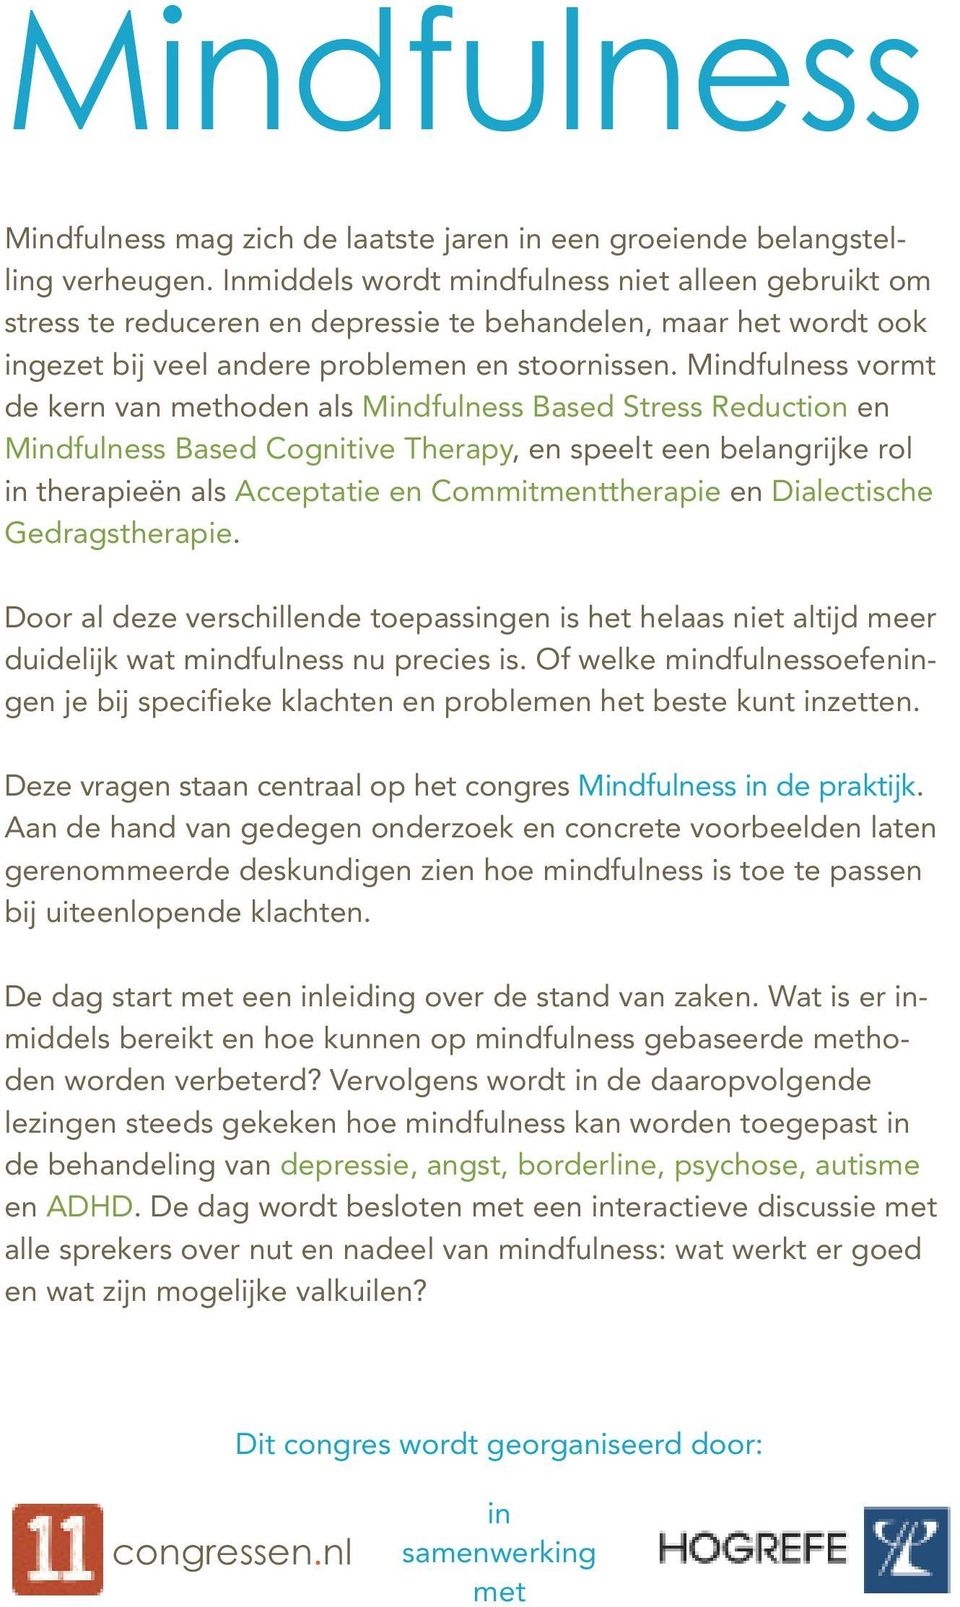 Mindfulness vormt de kern van methoden als Mindfulness Based Stress Reduction en Mindfulness Based Cognitive Therapy, en speelt een belangrijke rol in therapieën als Acceptatie en Commitmenttherapie